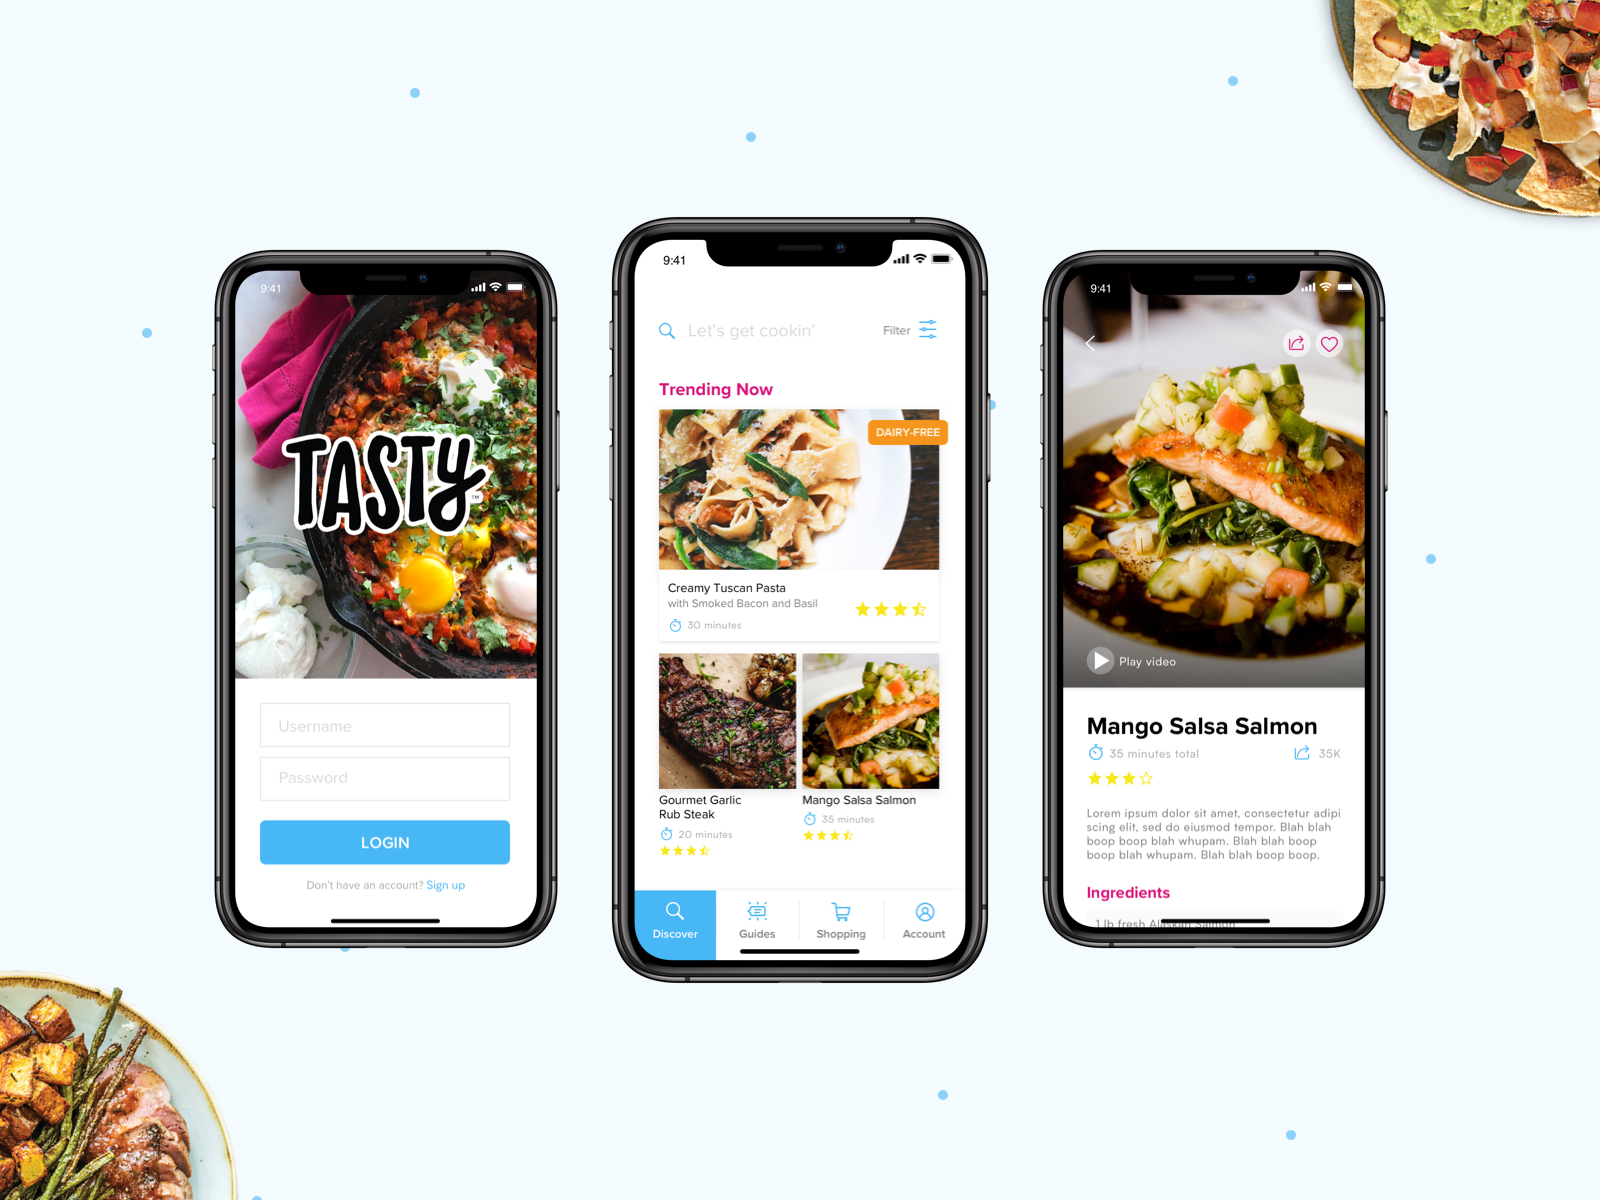 Tasty: Find the Best Recipes with this App